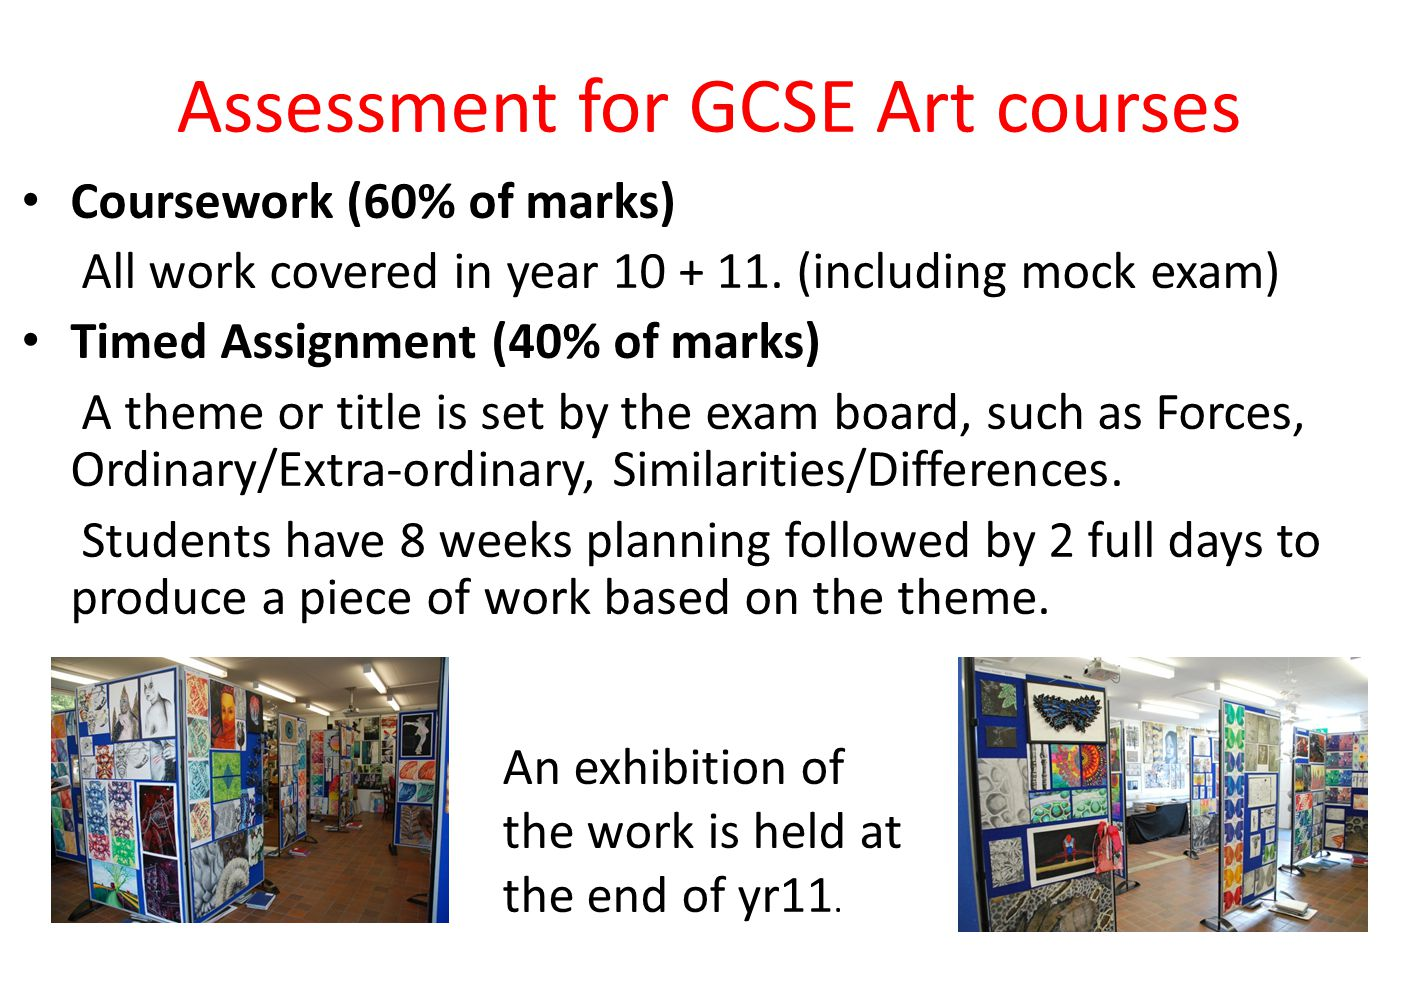 Assessment for GCSE Art courses Coursework (60% of marks) All work covered in year 10 + 11.